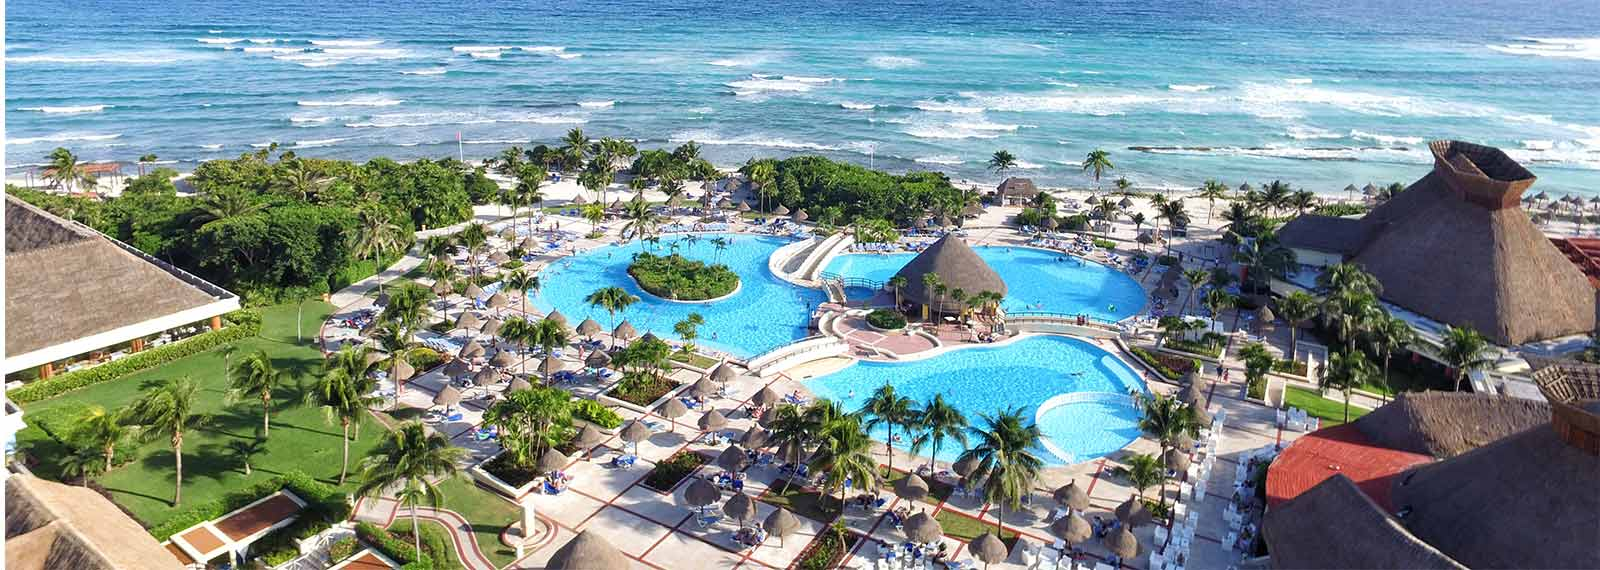 https://www.booking.com/hotel/mx/selina-tulum.xb.html?aid=1690871&no_rooms=1&group_adults=2&room1=A%2CA